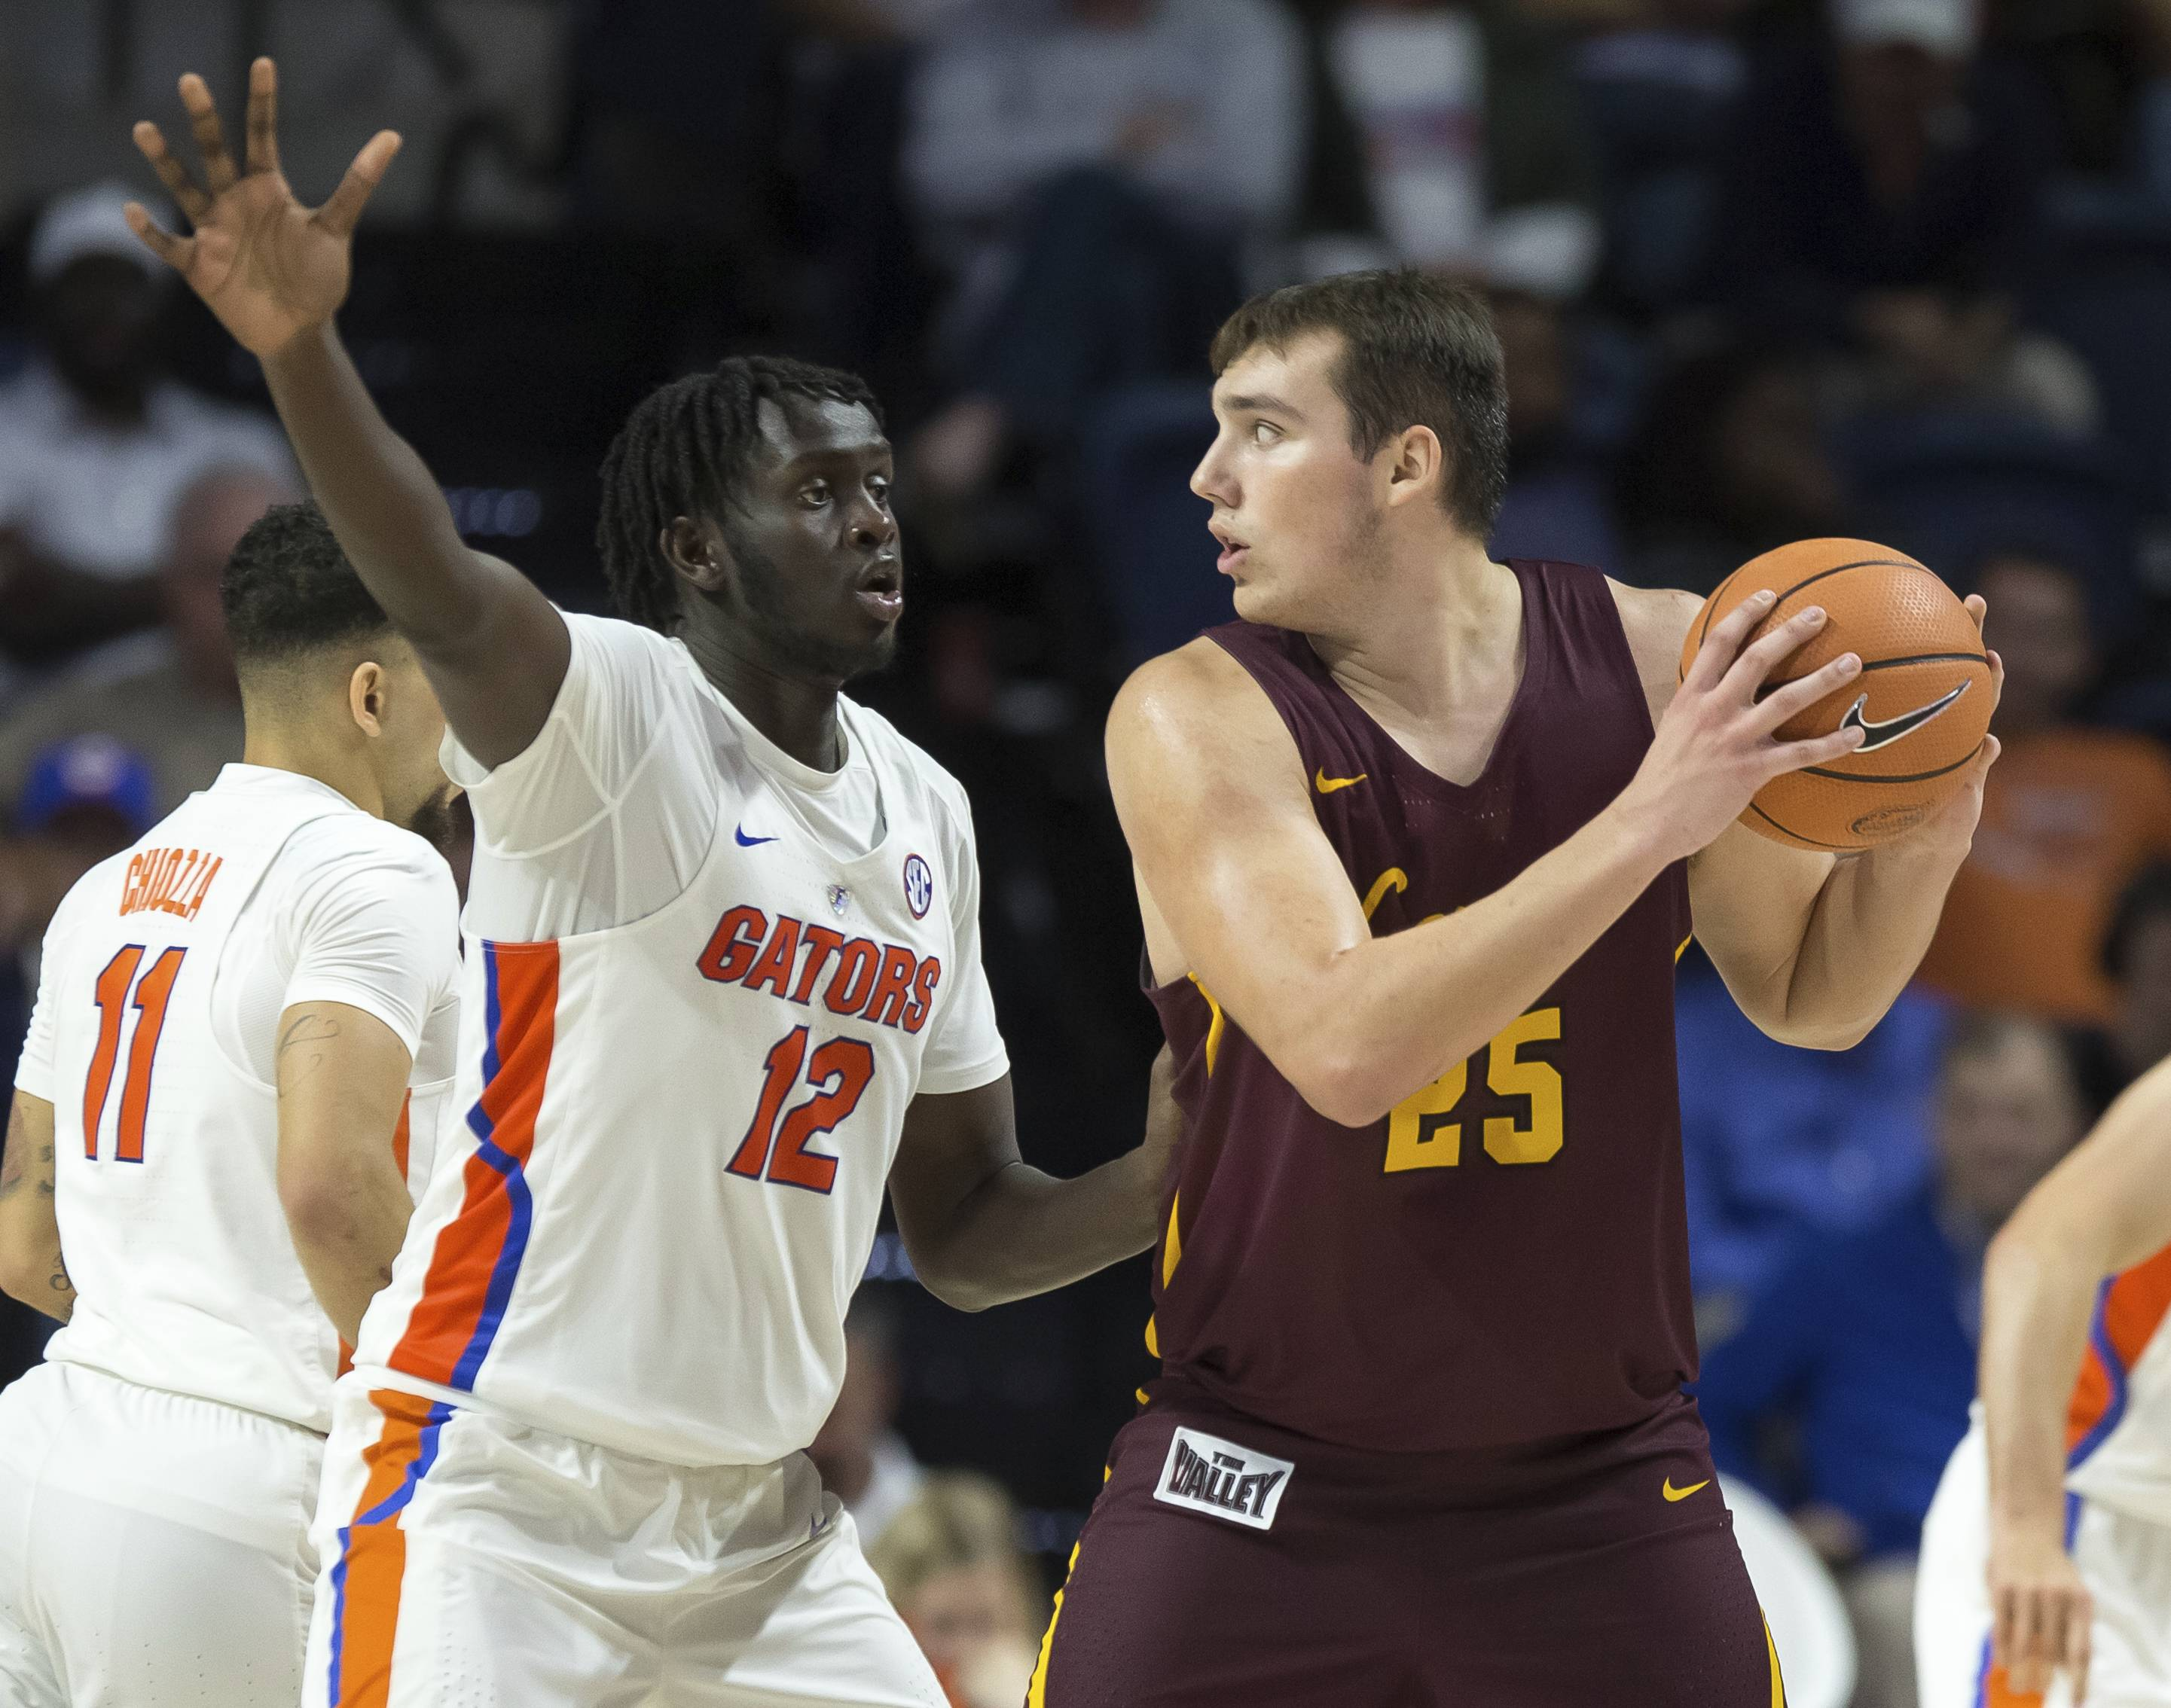 Loyola of Chicago center Cameron Krutwig (25) looks to pass around Florida center Gorjok Gak (12) during the second half of an NCAA college basketball game in Gainesville, Fla., Wednesday, Dec. 6, 2017. Loyola of Chicago won 65-59. (AP Photo/Ron Irby)